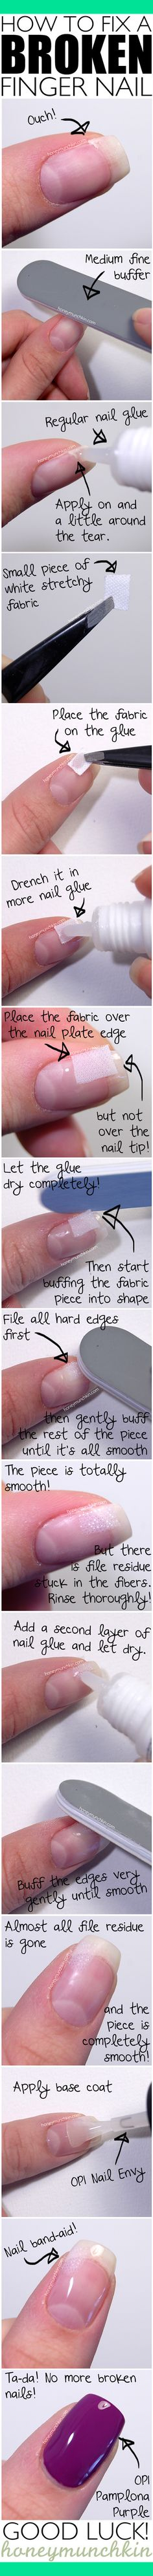 Tutorial: How to fix a broken finger nail